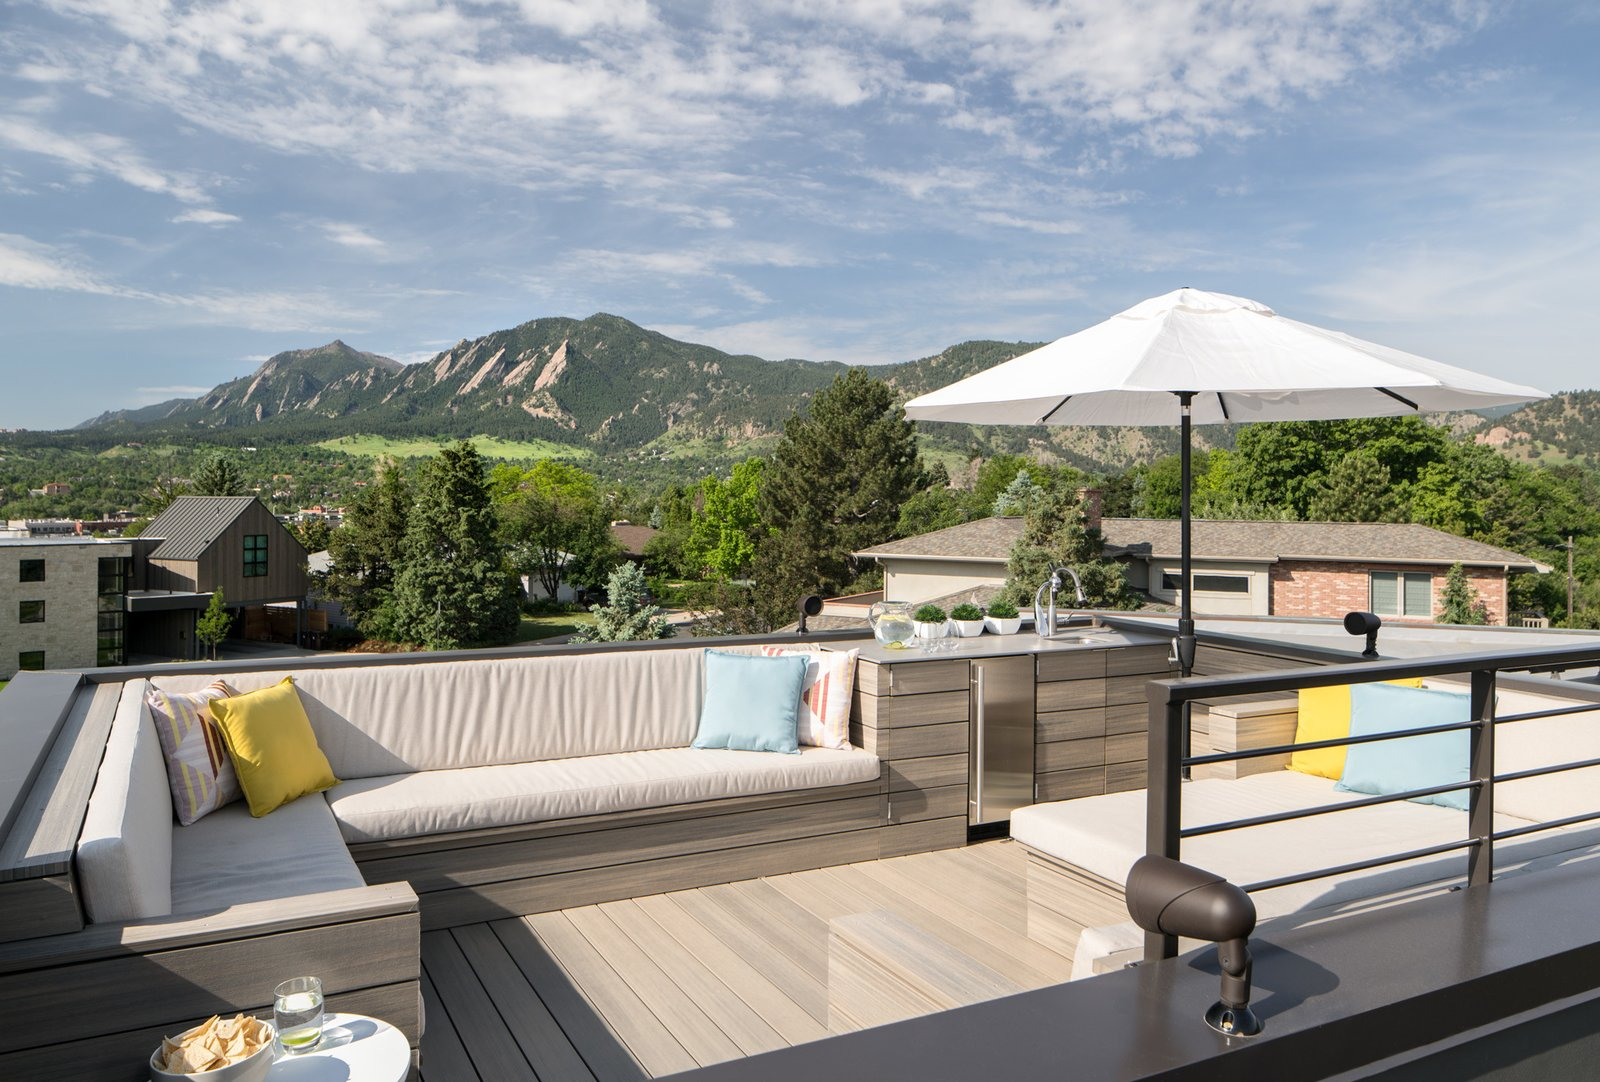 A rooftop deck provides 360-degree views of the Boulder Flatirons and the entire front range.